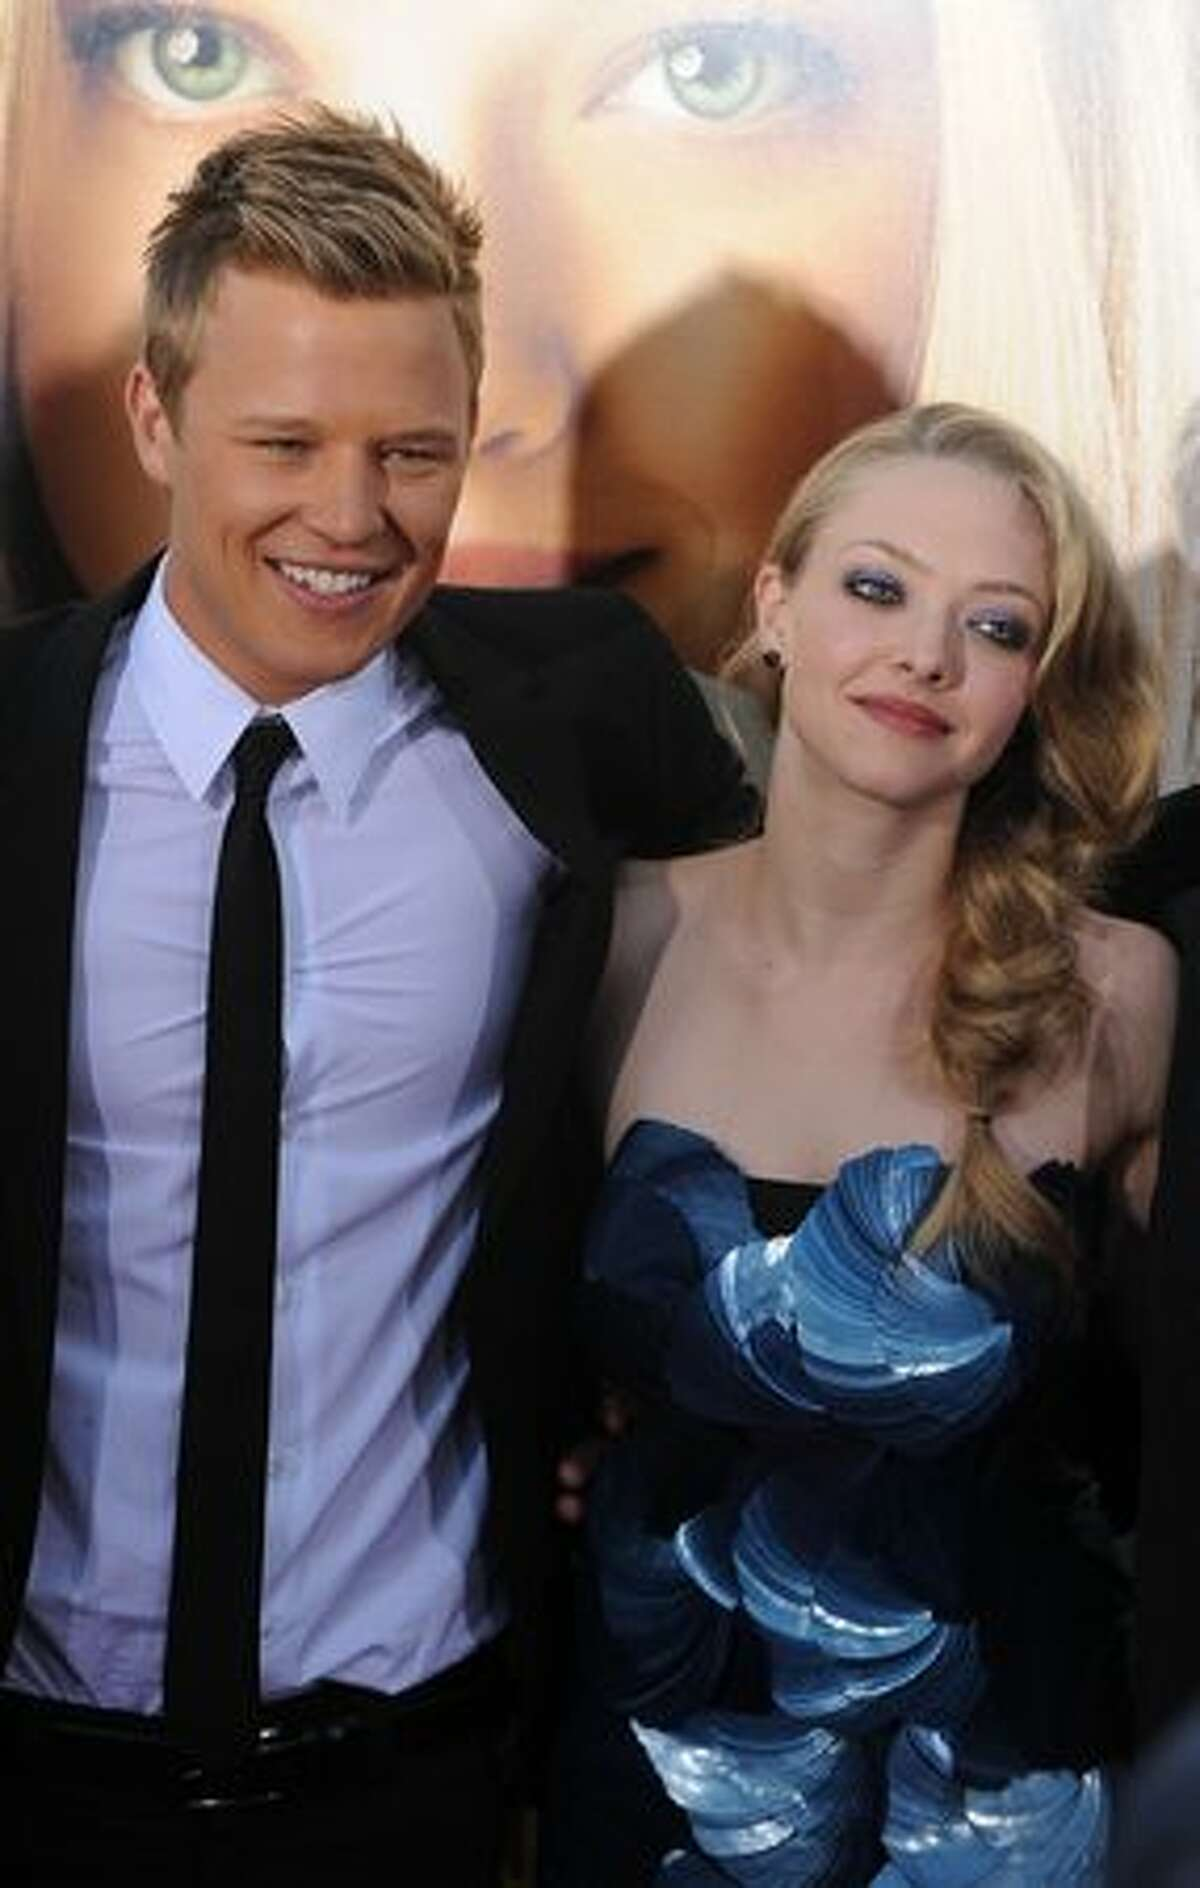 Cast members Christopher Egan (L) and Amanda Seyfried arrive at the premiere of